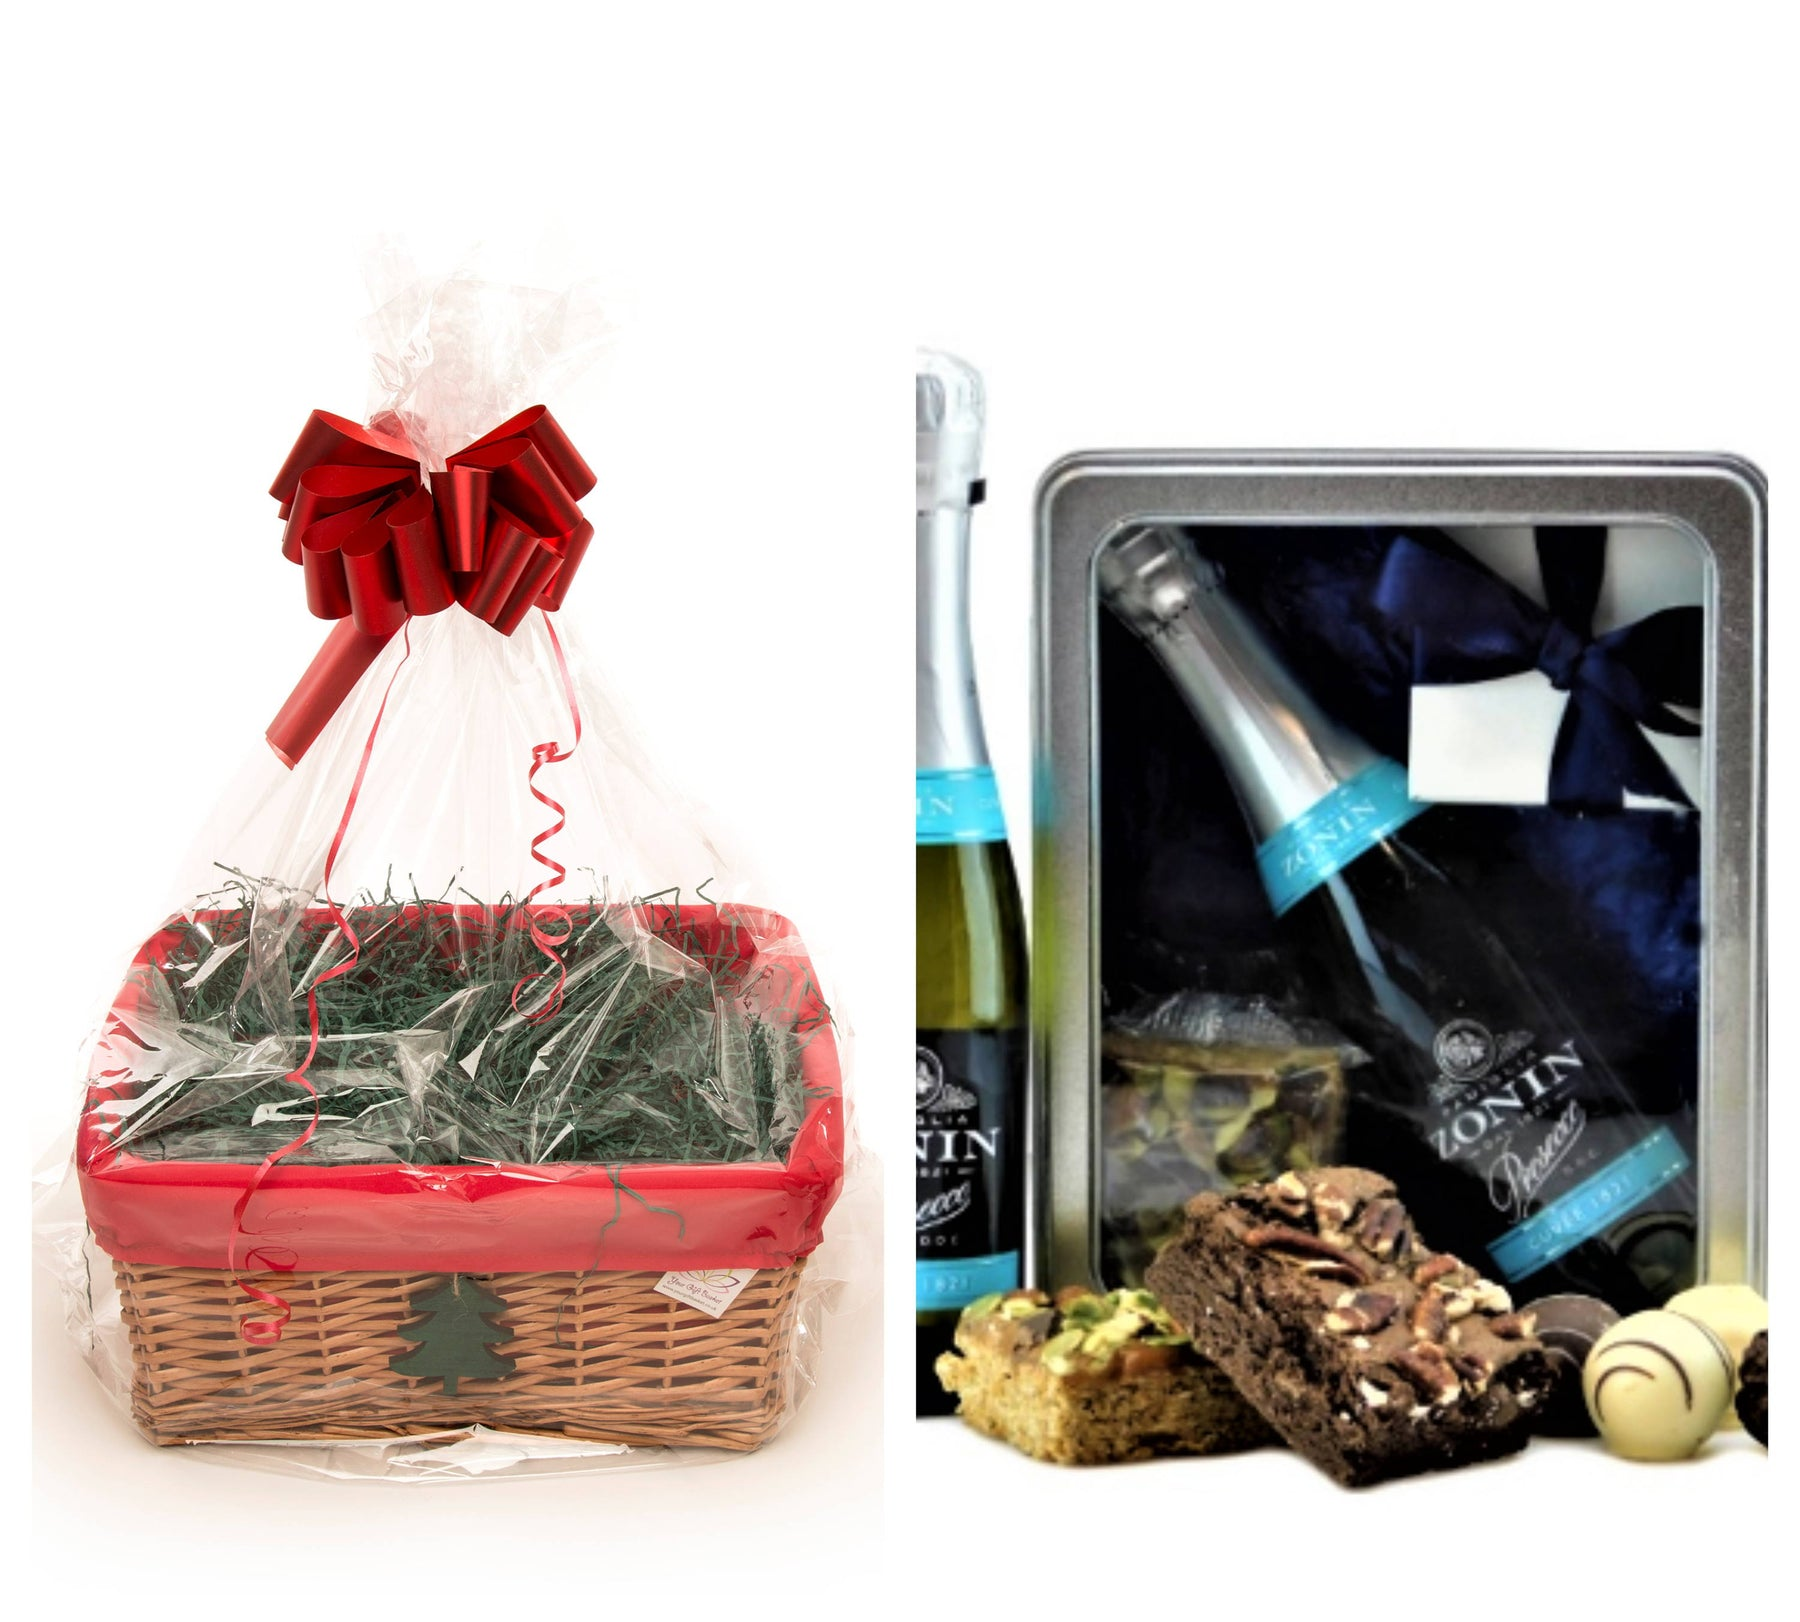 Baskets For Corporate Gifts This Christmas